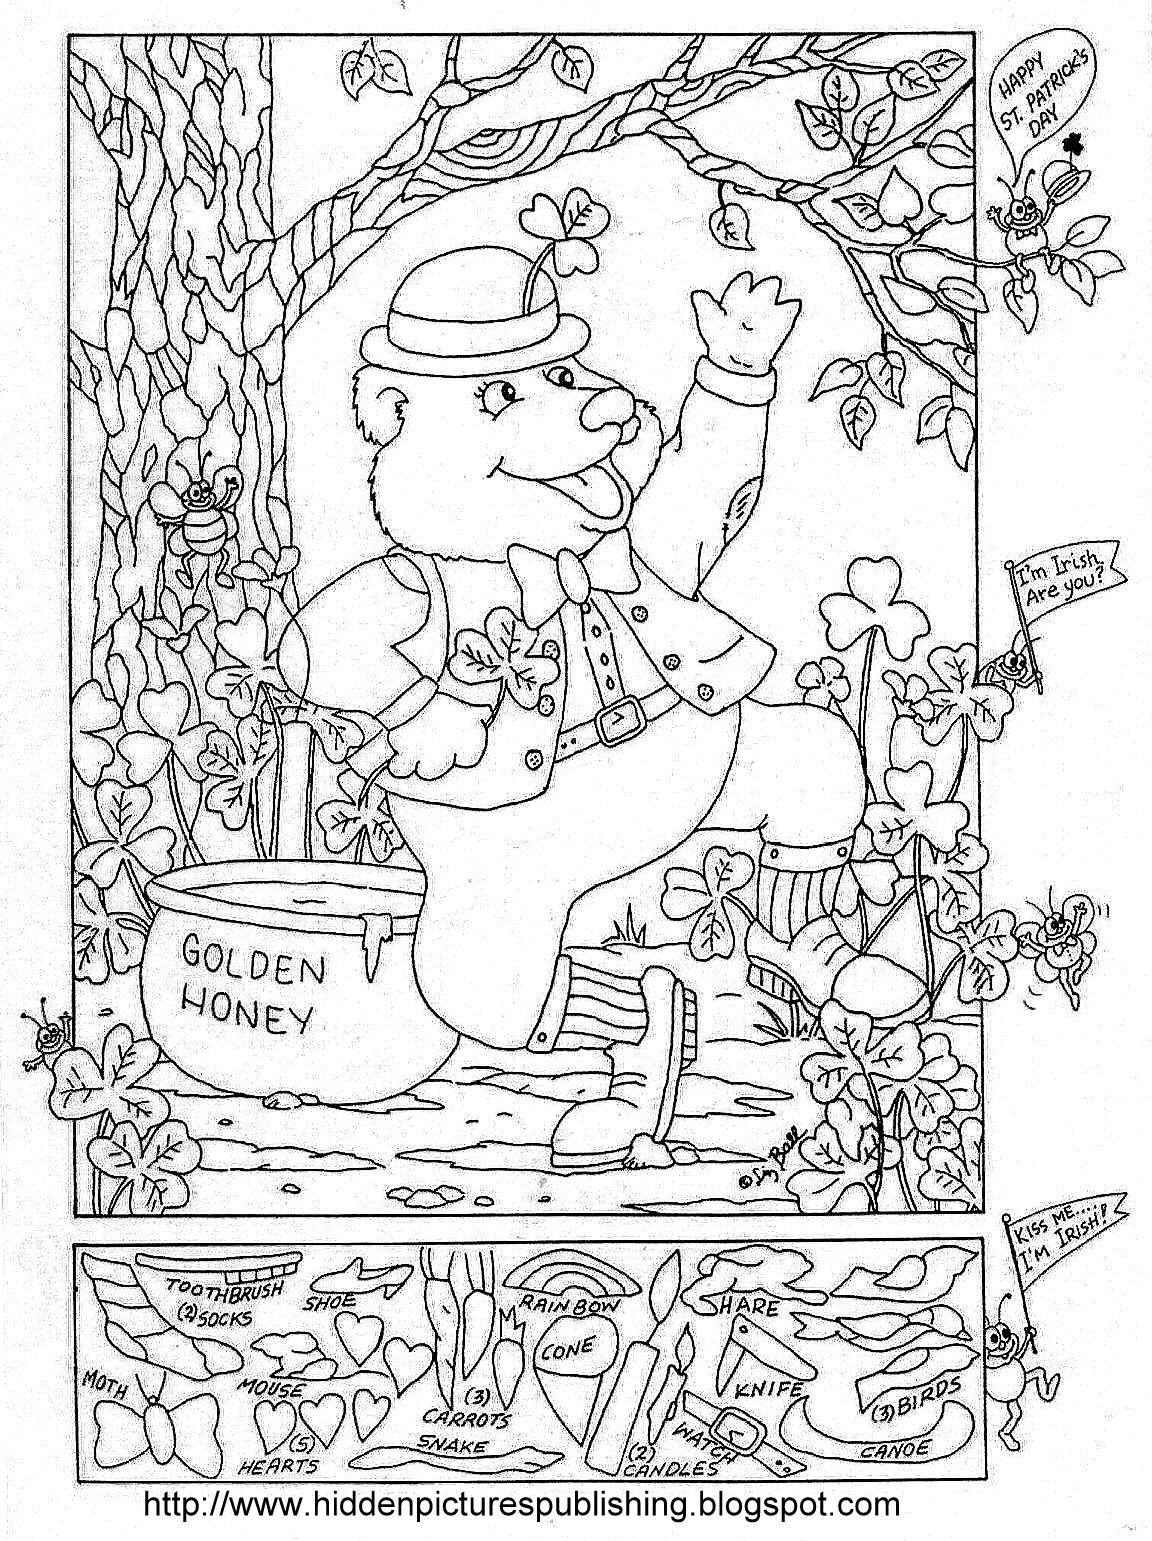 hippie coloring page hippie art peace signs coloring pages for